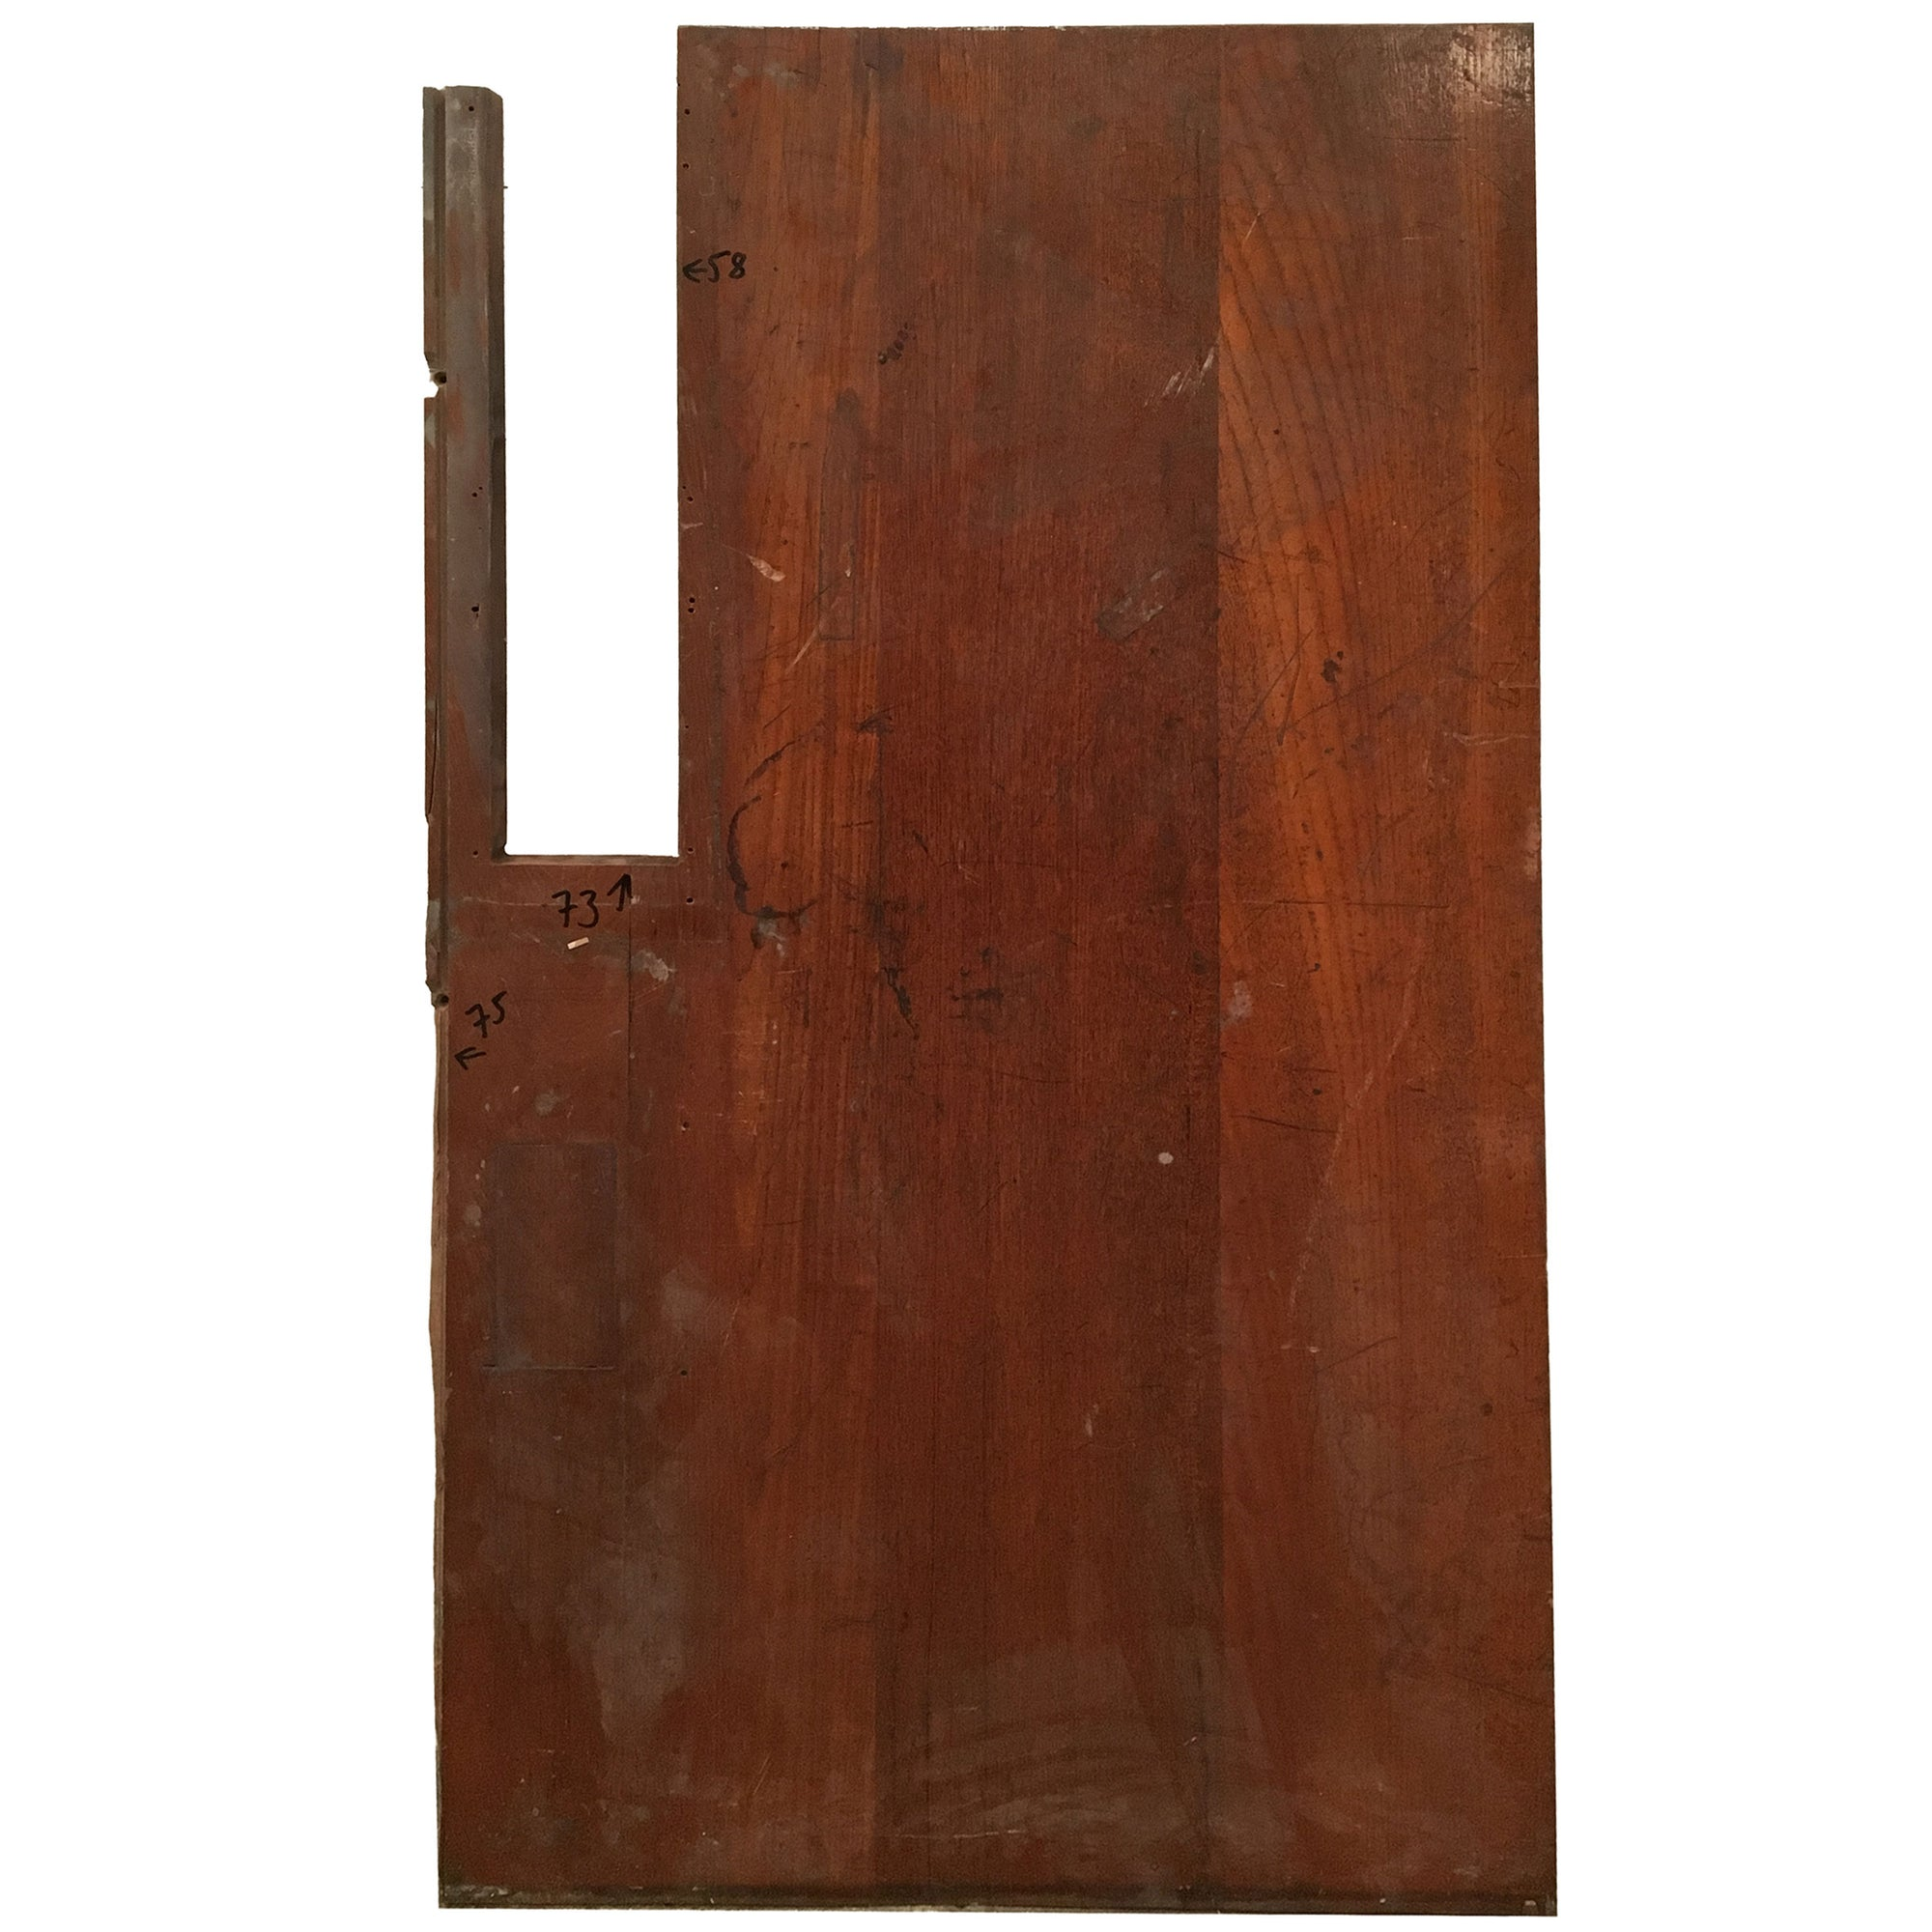 Reclaimed Teak/Iroko Worktop 134 X 75cm - architectural-forum